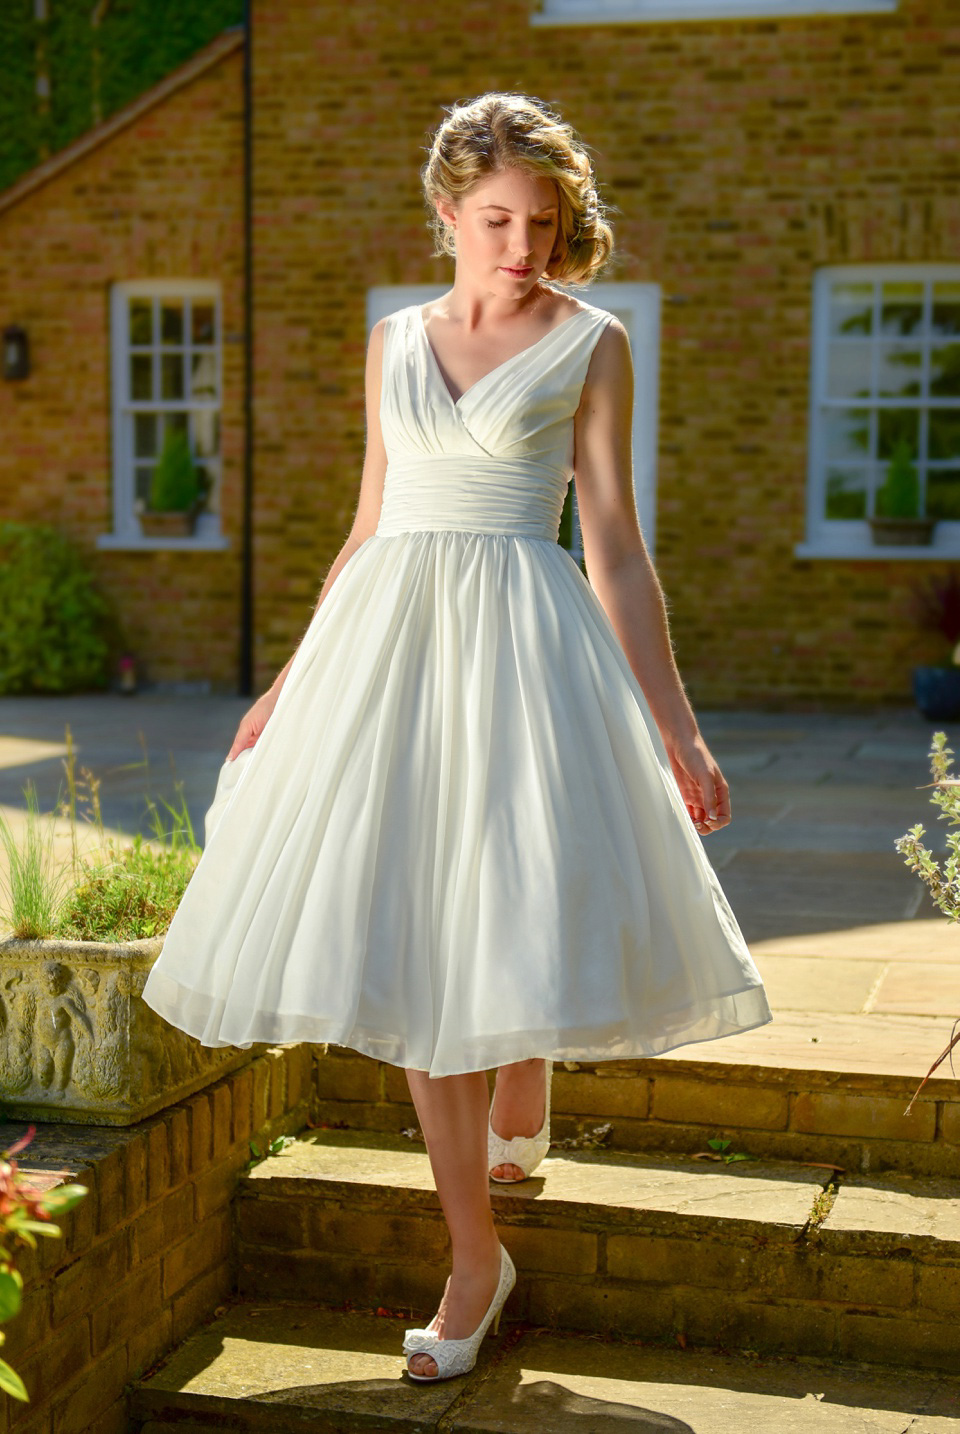 Introducing Elegance 50s Vintage Inspired Gowns For